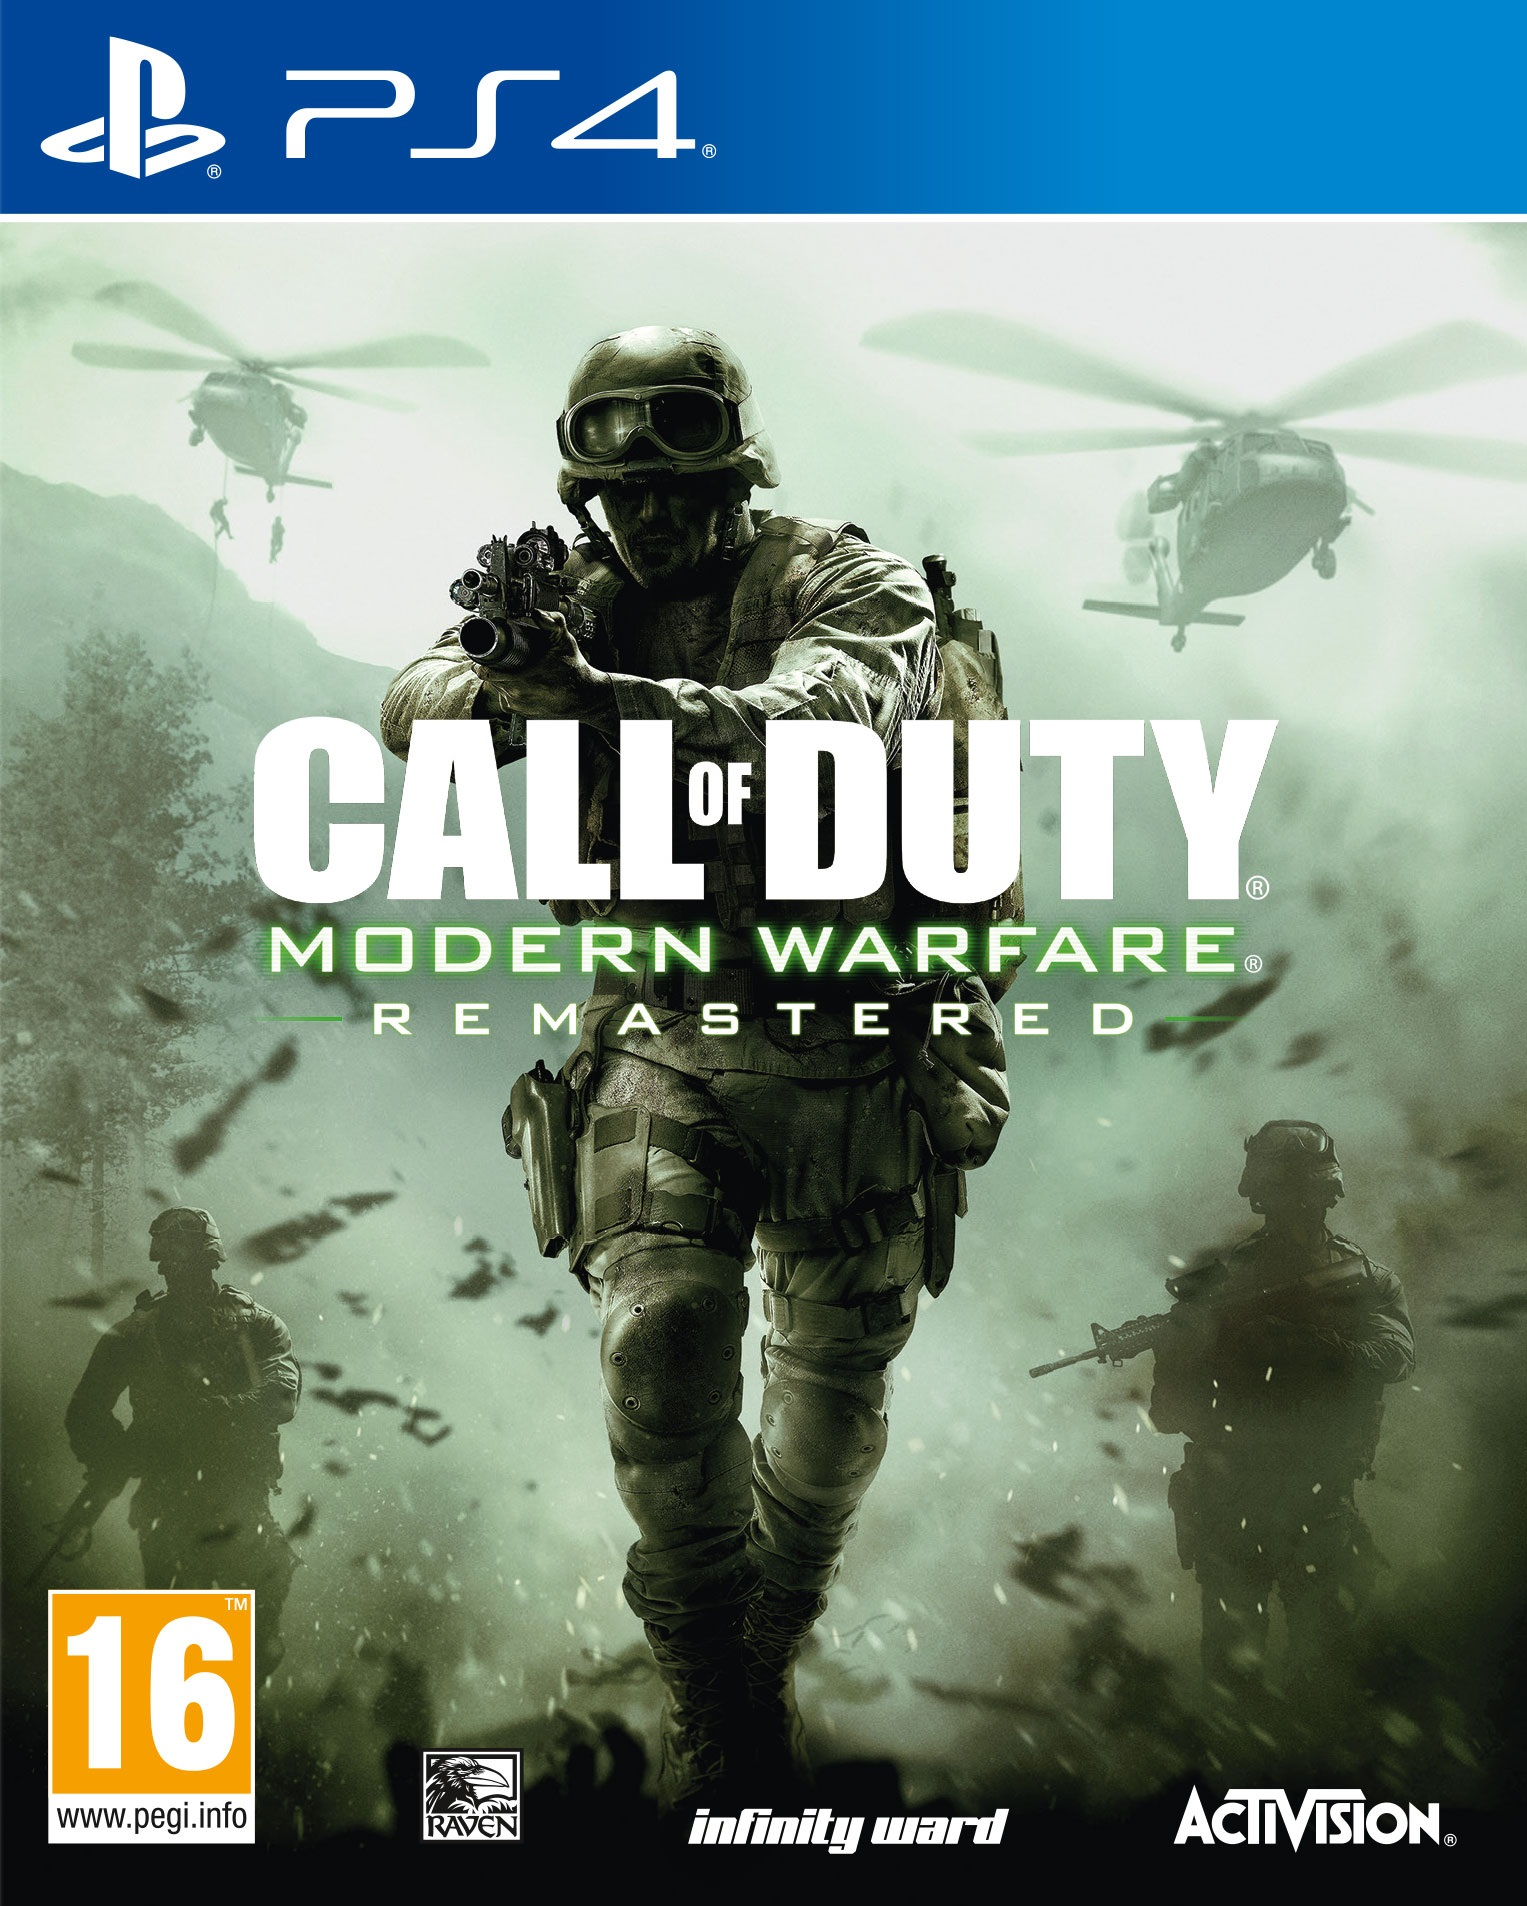 Call of Duty: Modern Warfare Remastered [PS4] 5.05 / 6.72 / 7.02 [EUR] (2016) [Русский] (v1.13)